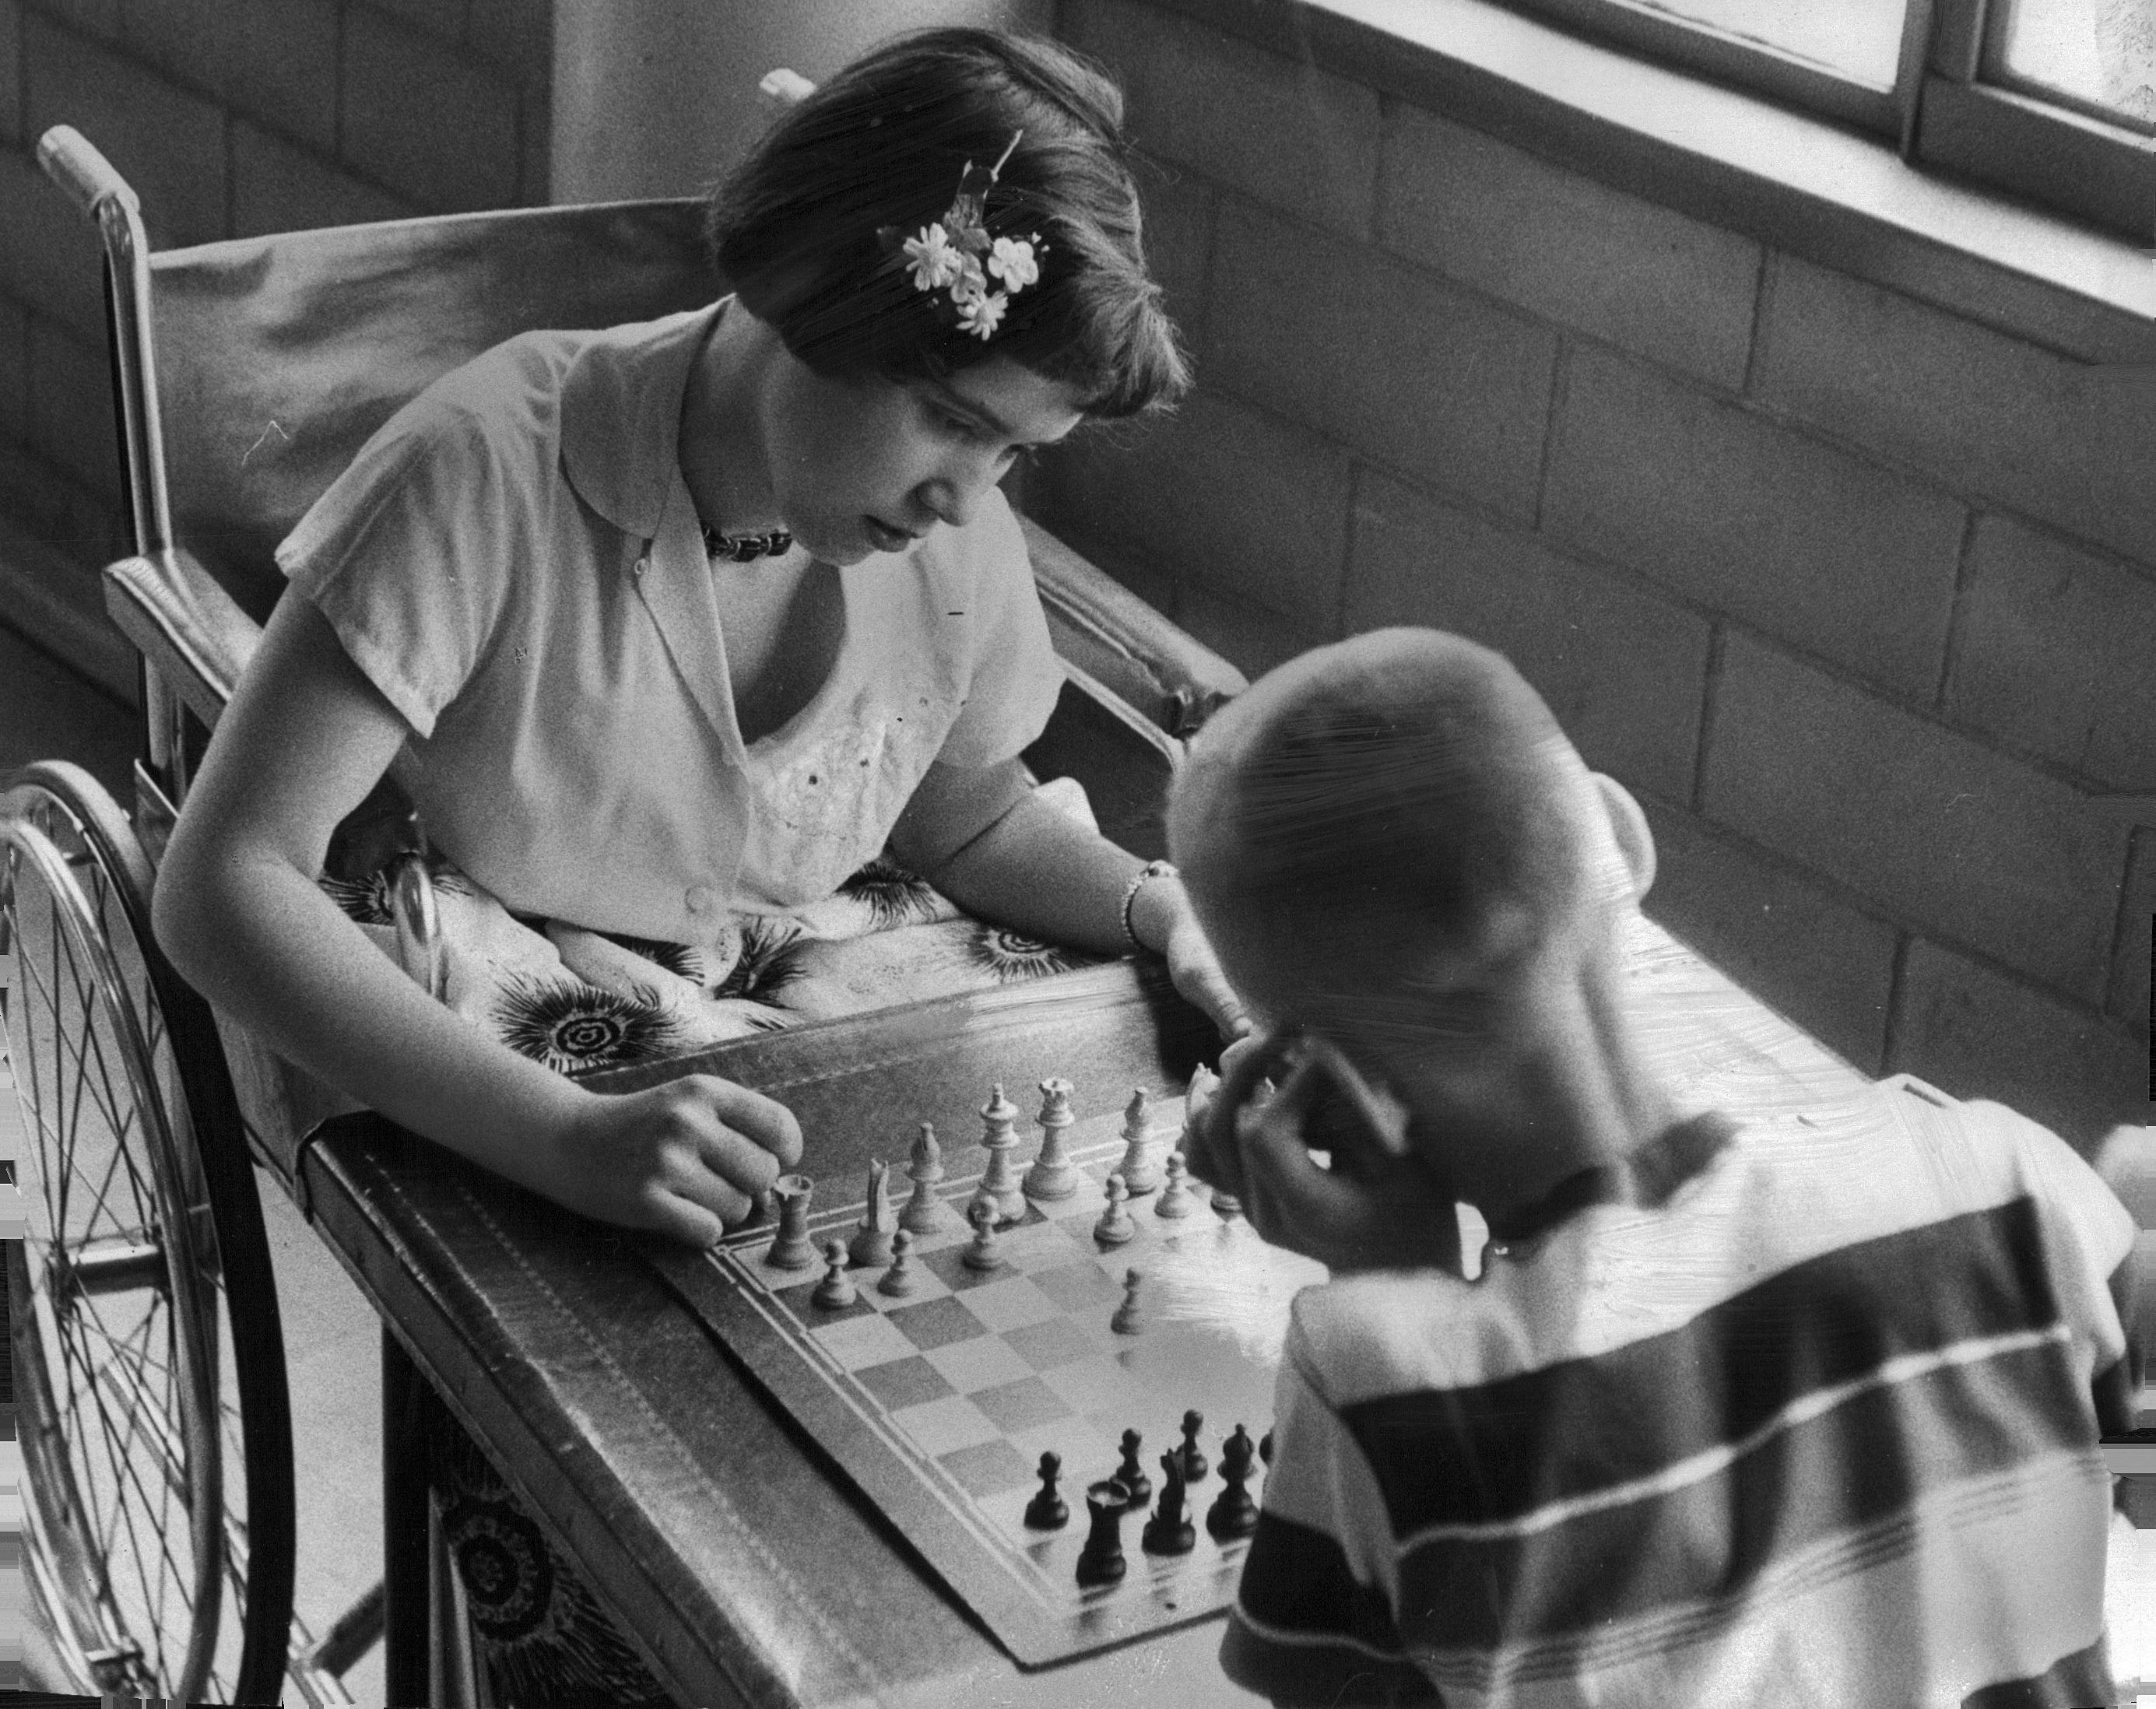 A girl in a wheelchair plays chess with a young boy